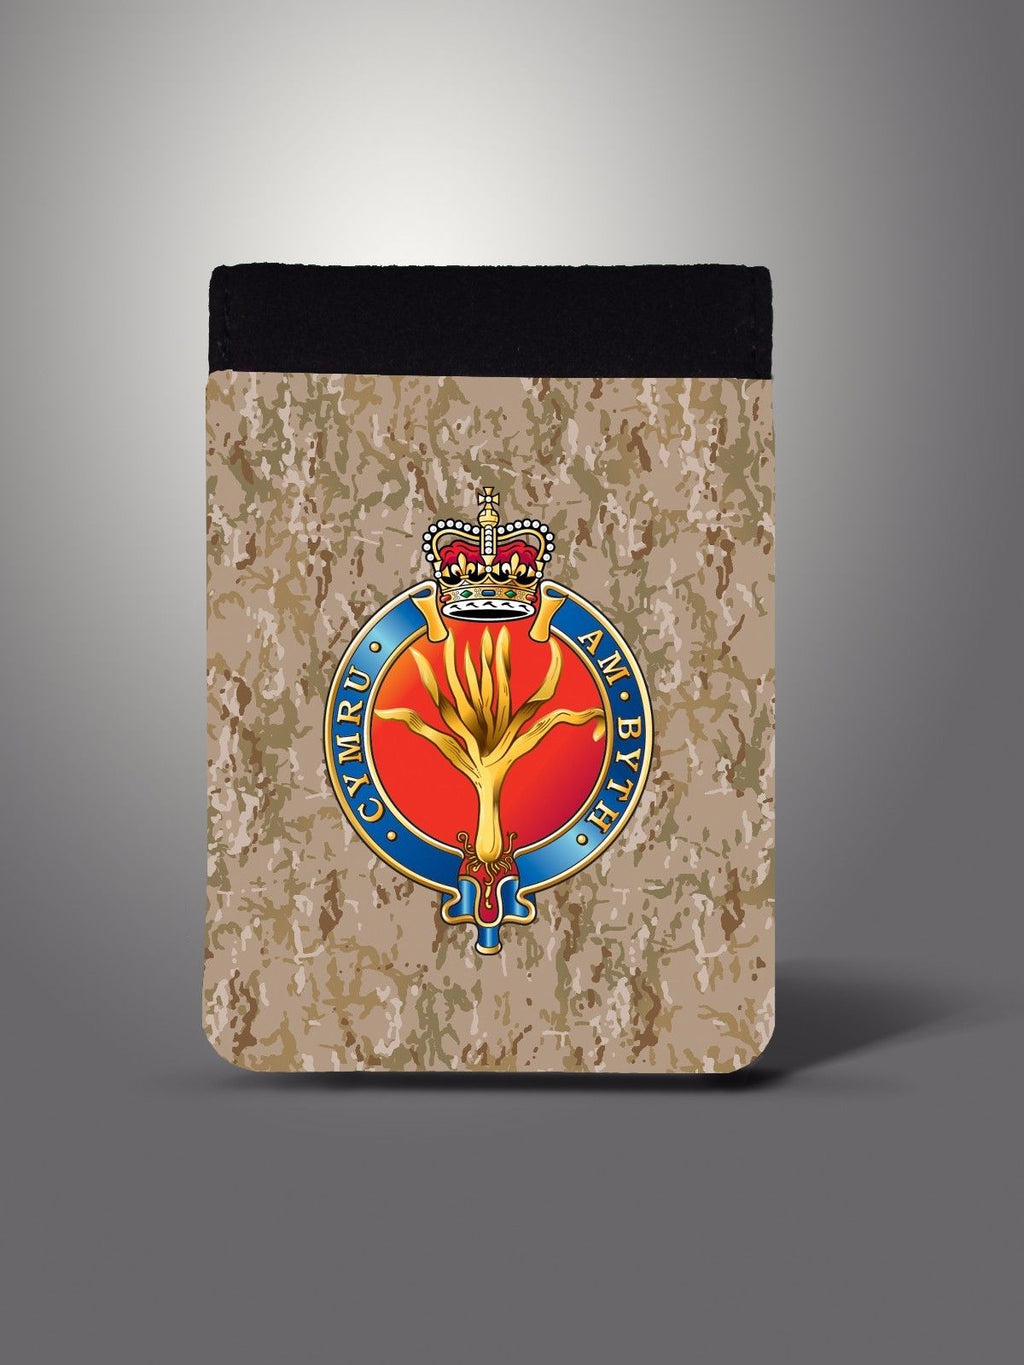 Welsh Guards Notepad